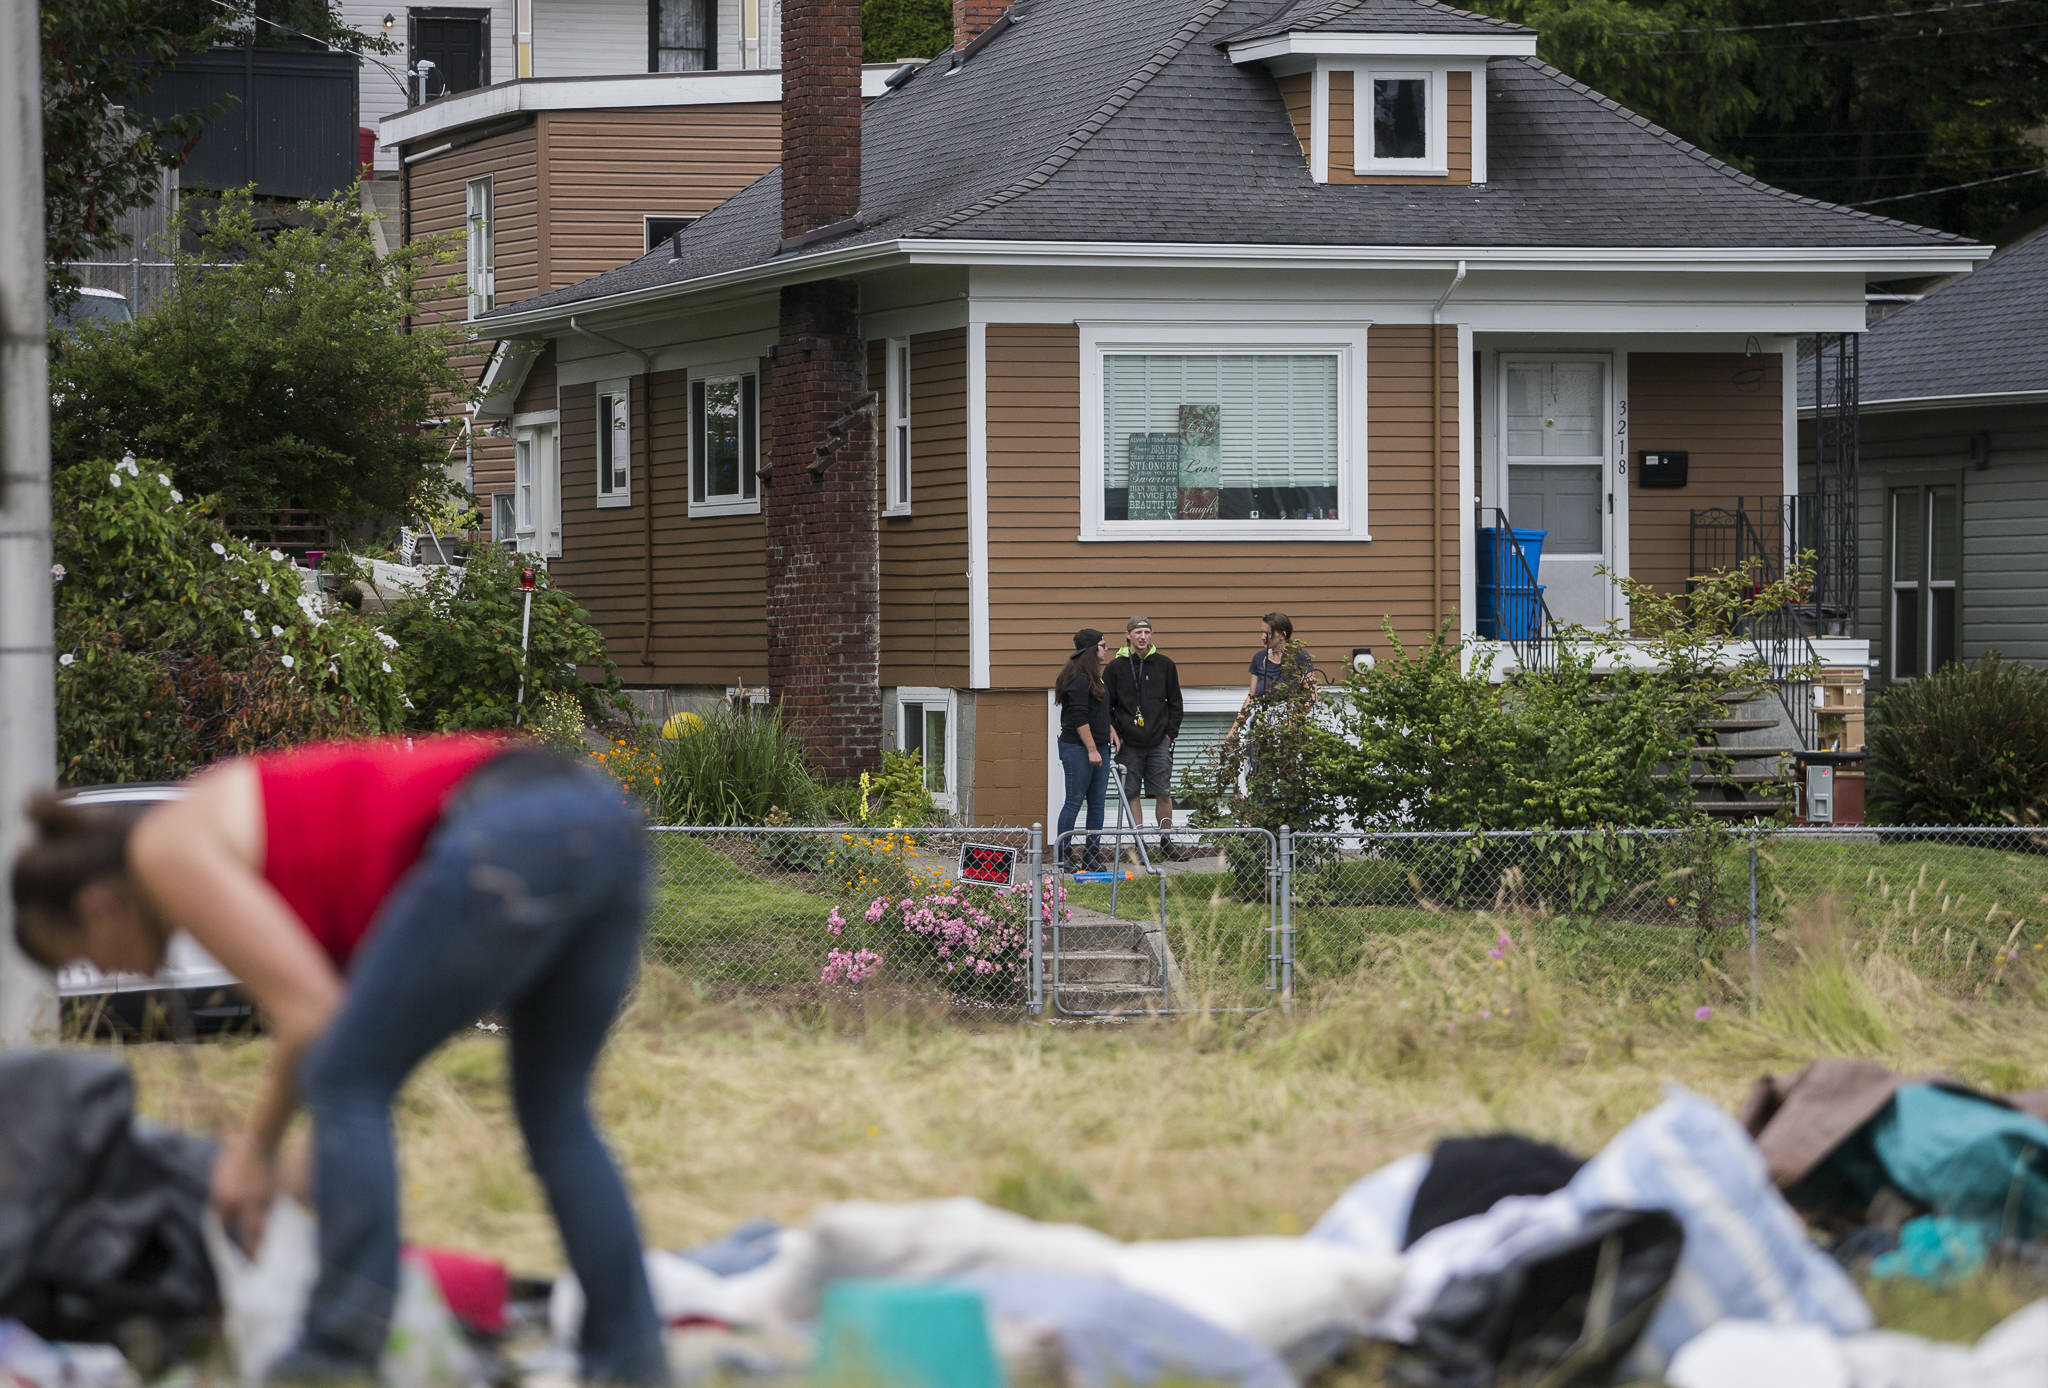 Neighbors watch as people clean and gather their belongings at a homeless encampment on Thursday in Everett. (Olivia Vanni / The Herald)